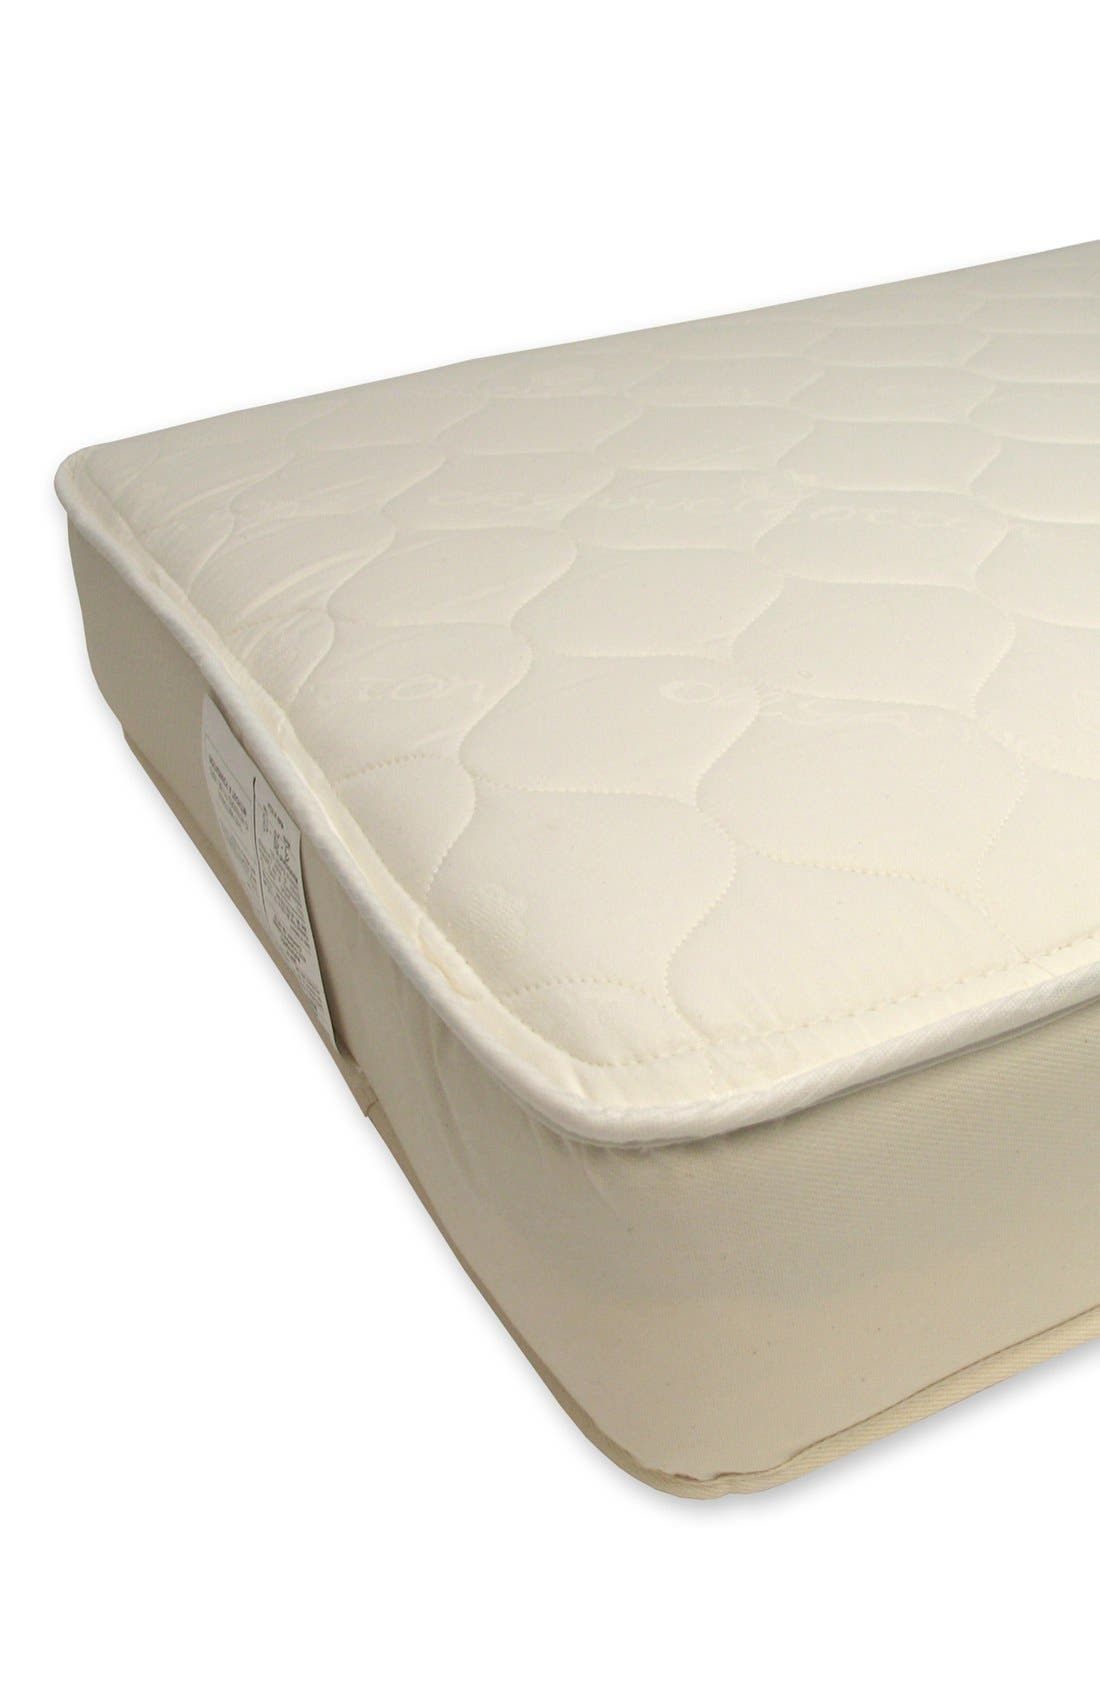 '252' Organic Cotton 2-in-1 Ultra/Quilted Crib Mattress,                             Alternate thumbnail 4, color,